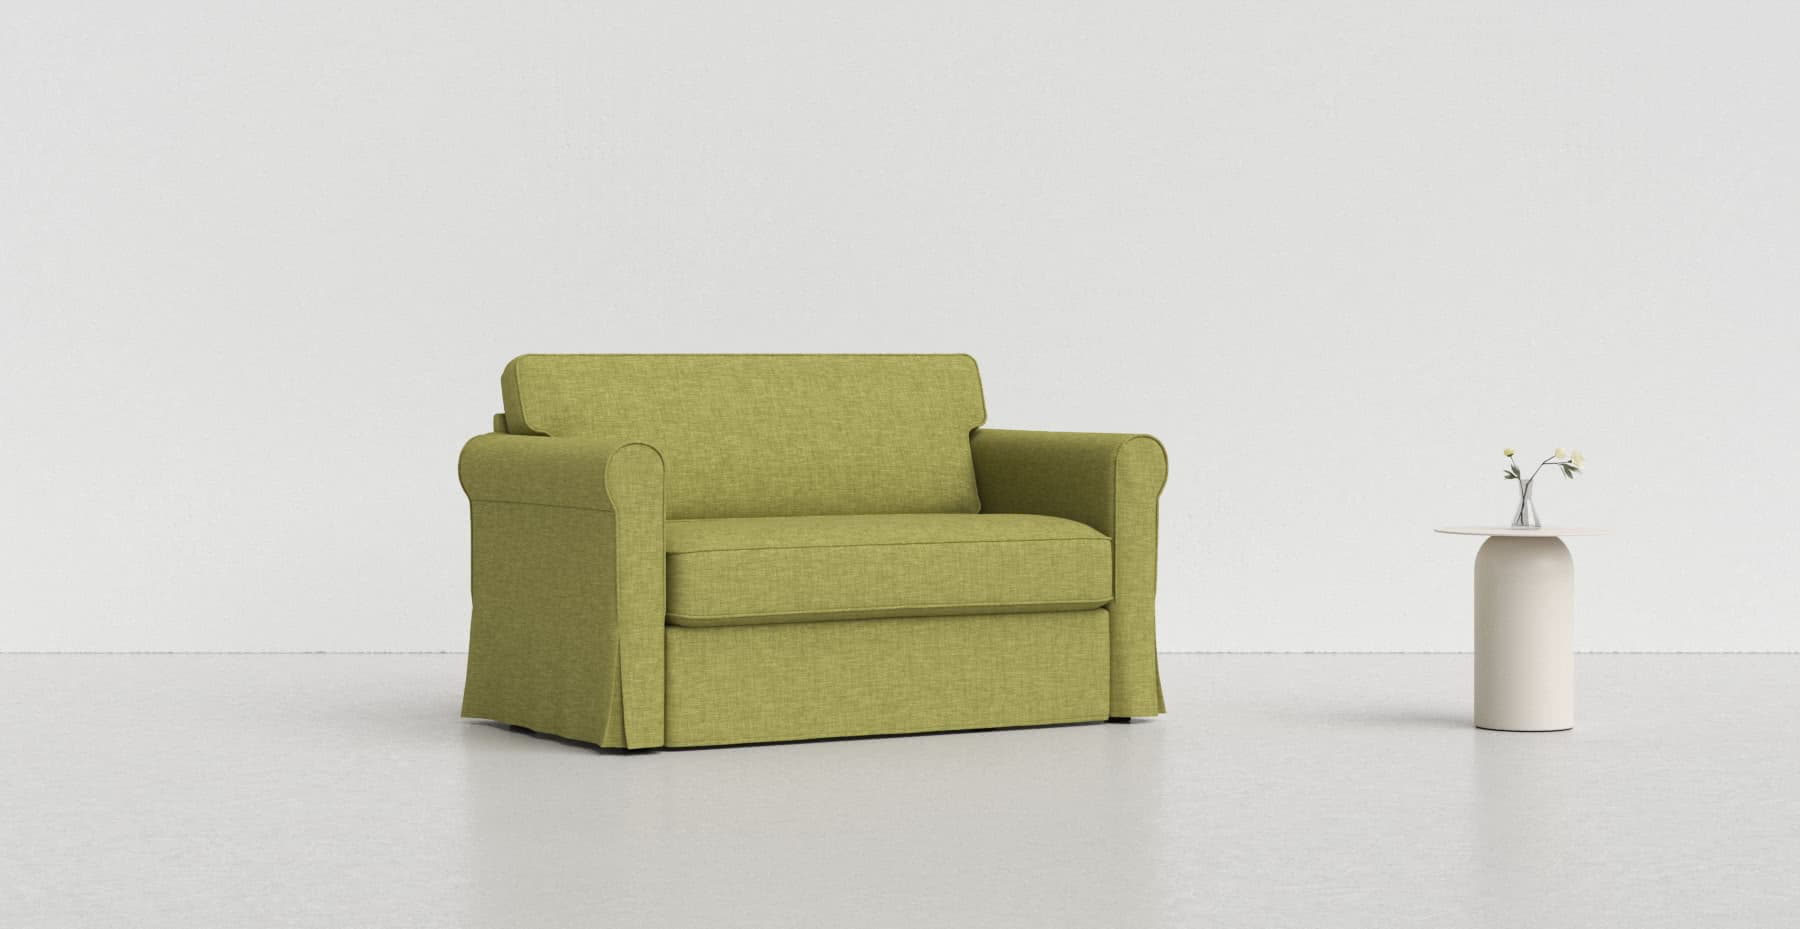 Replacement Ikea Sofa Covers For The Discontinued Hagalund